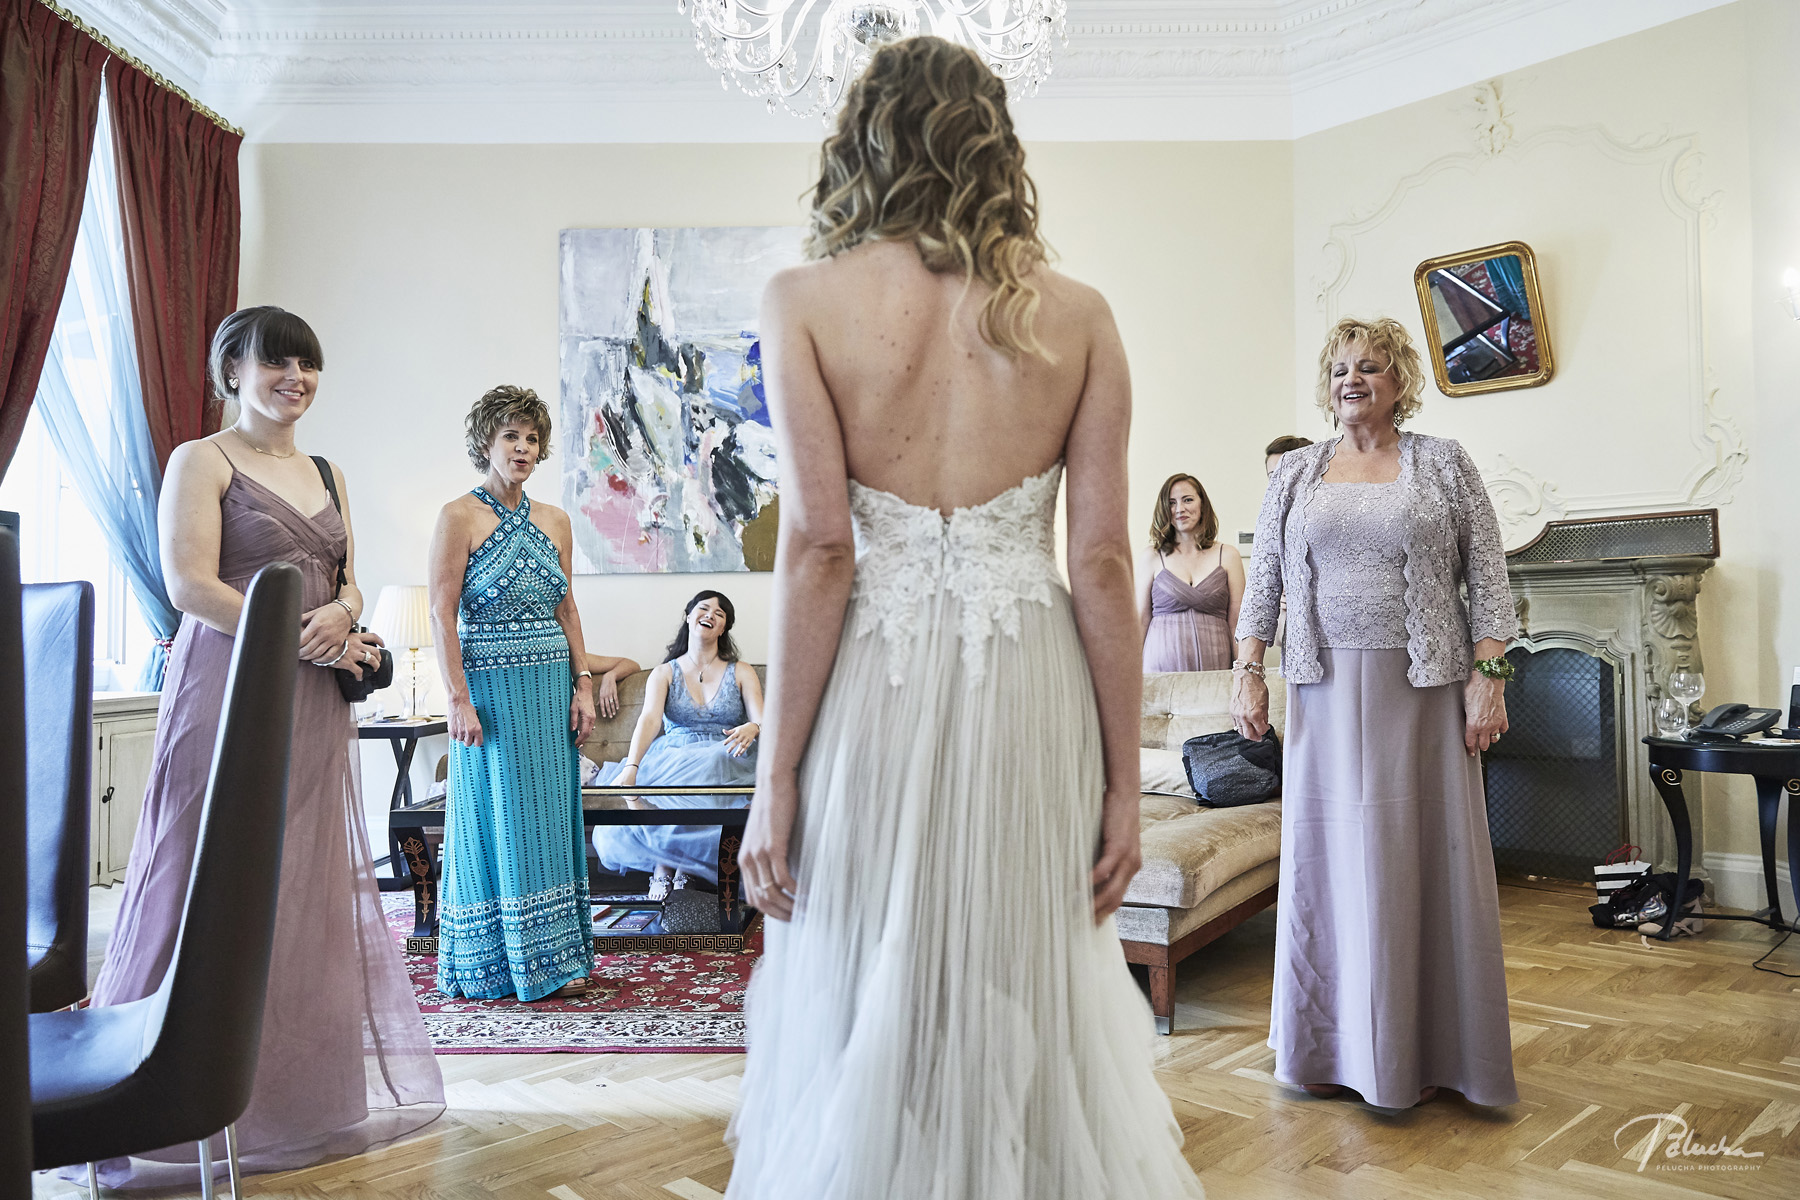 The Bride Reveals Herself